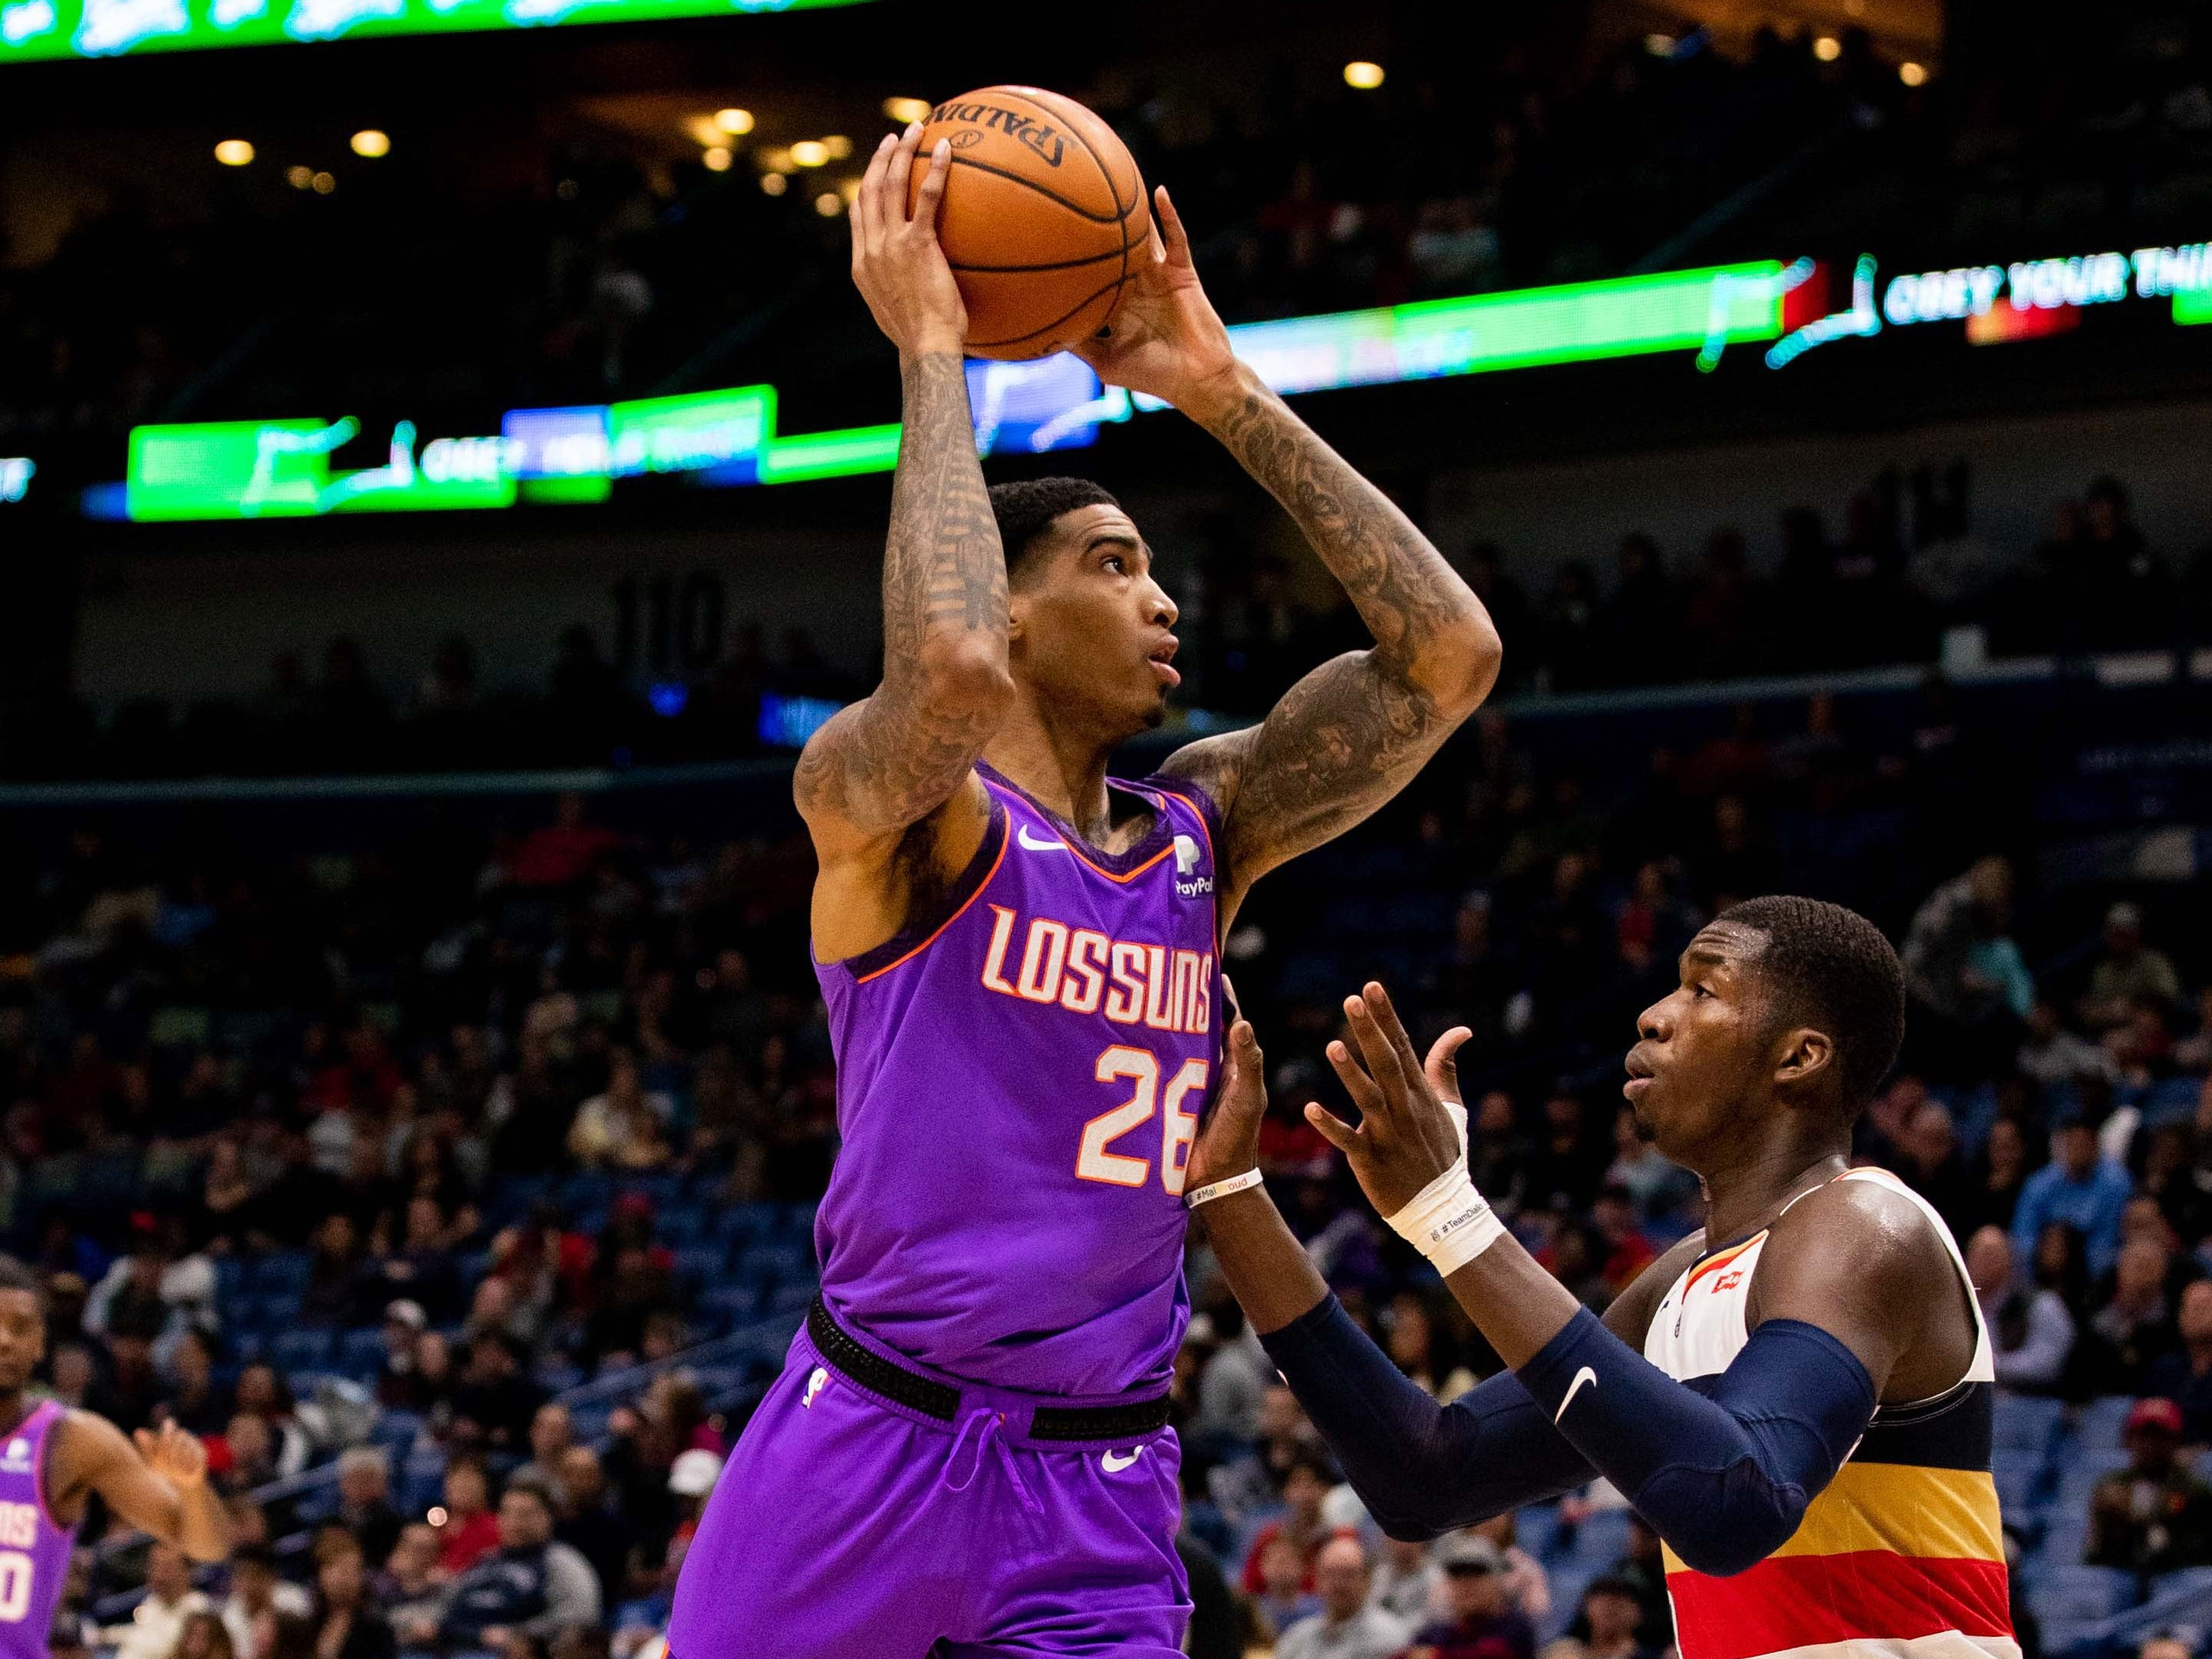 Mar 16, 2019; New Orleans, LA, USA; Phoenix Suns forward Ray Spalding (26) looks to pass against New Orleans Pelicans during the first half at Smoothie King Center.